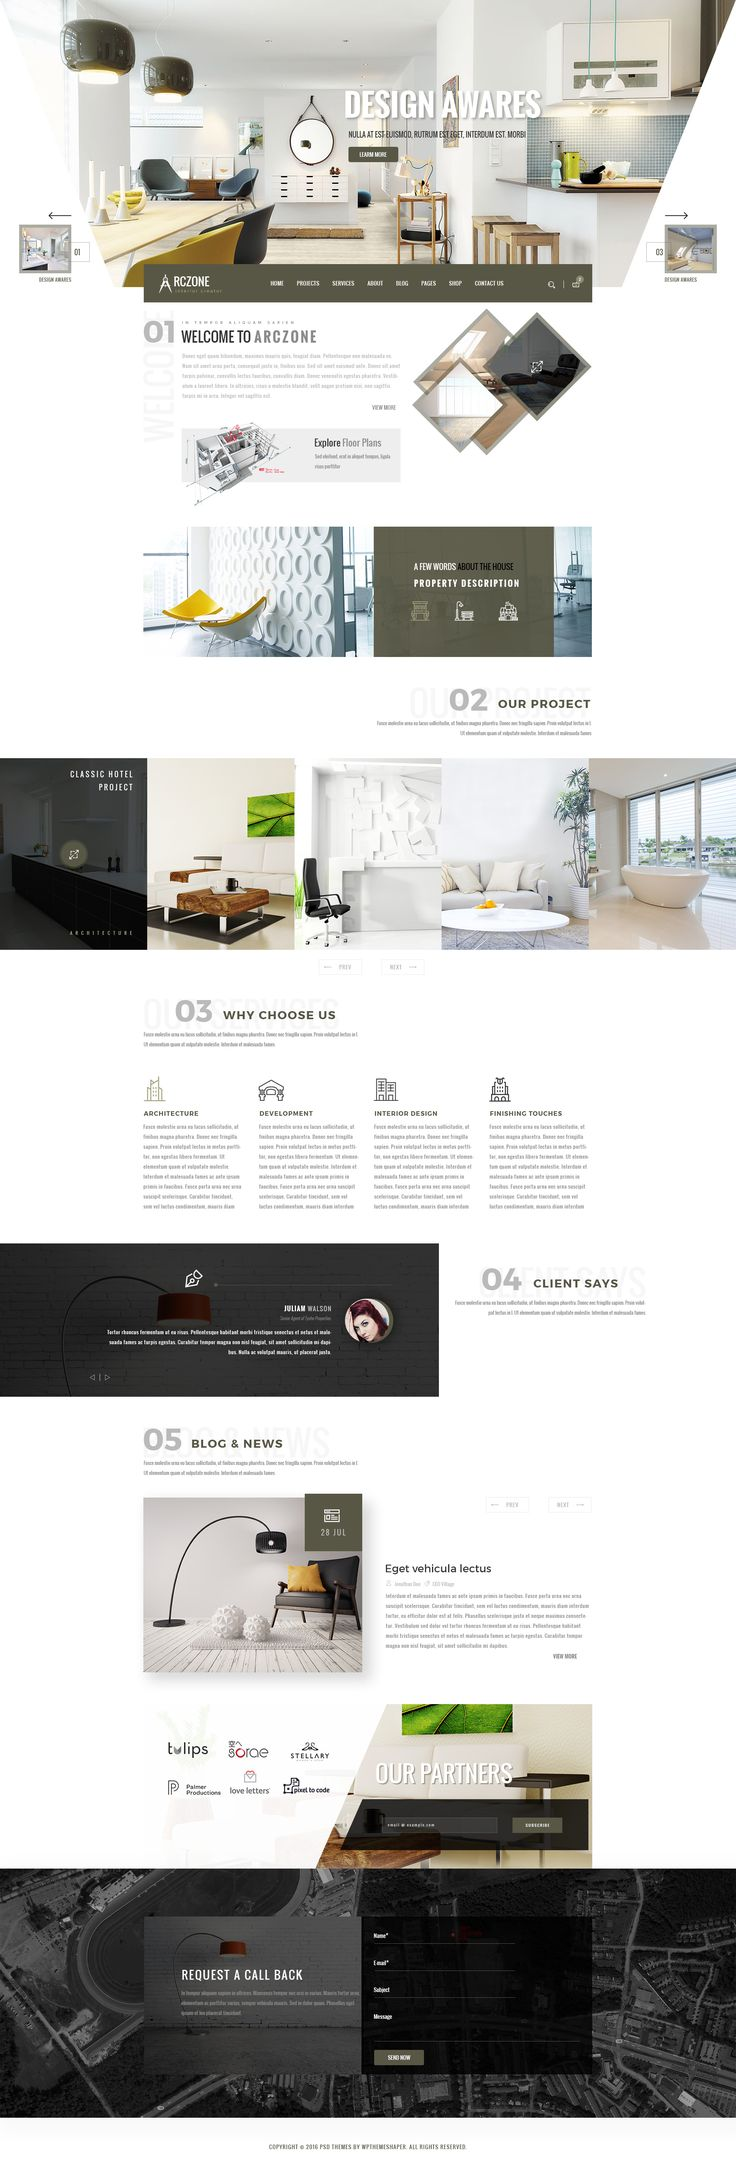 ARCZONE Interior Design Decor Architecture Business Template O Download